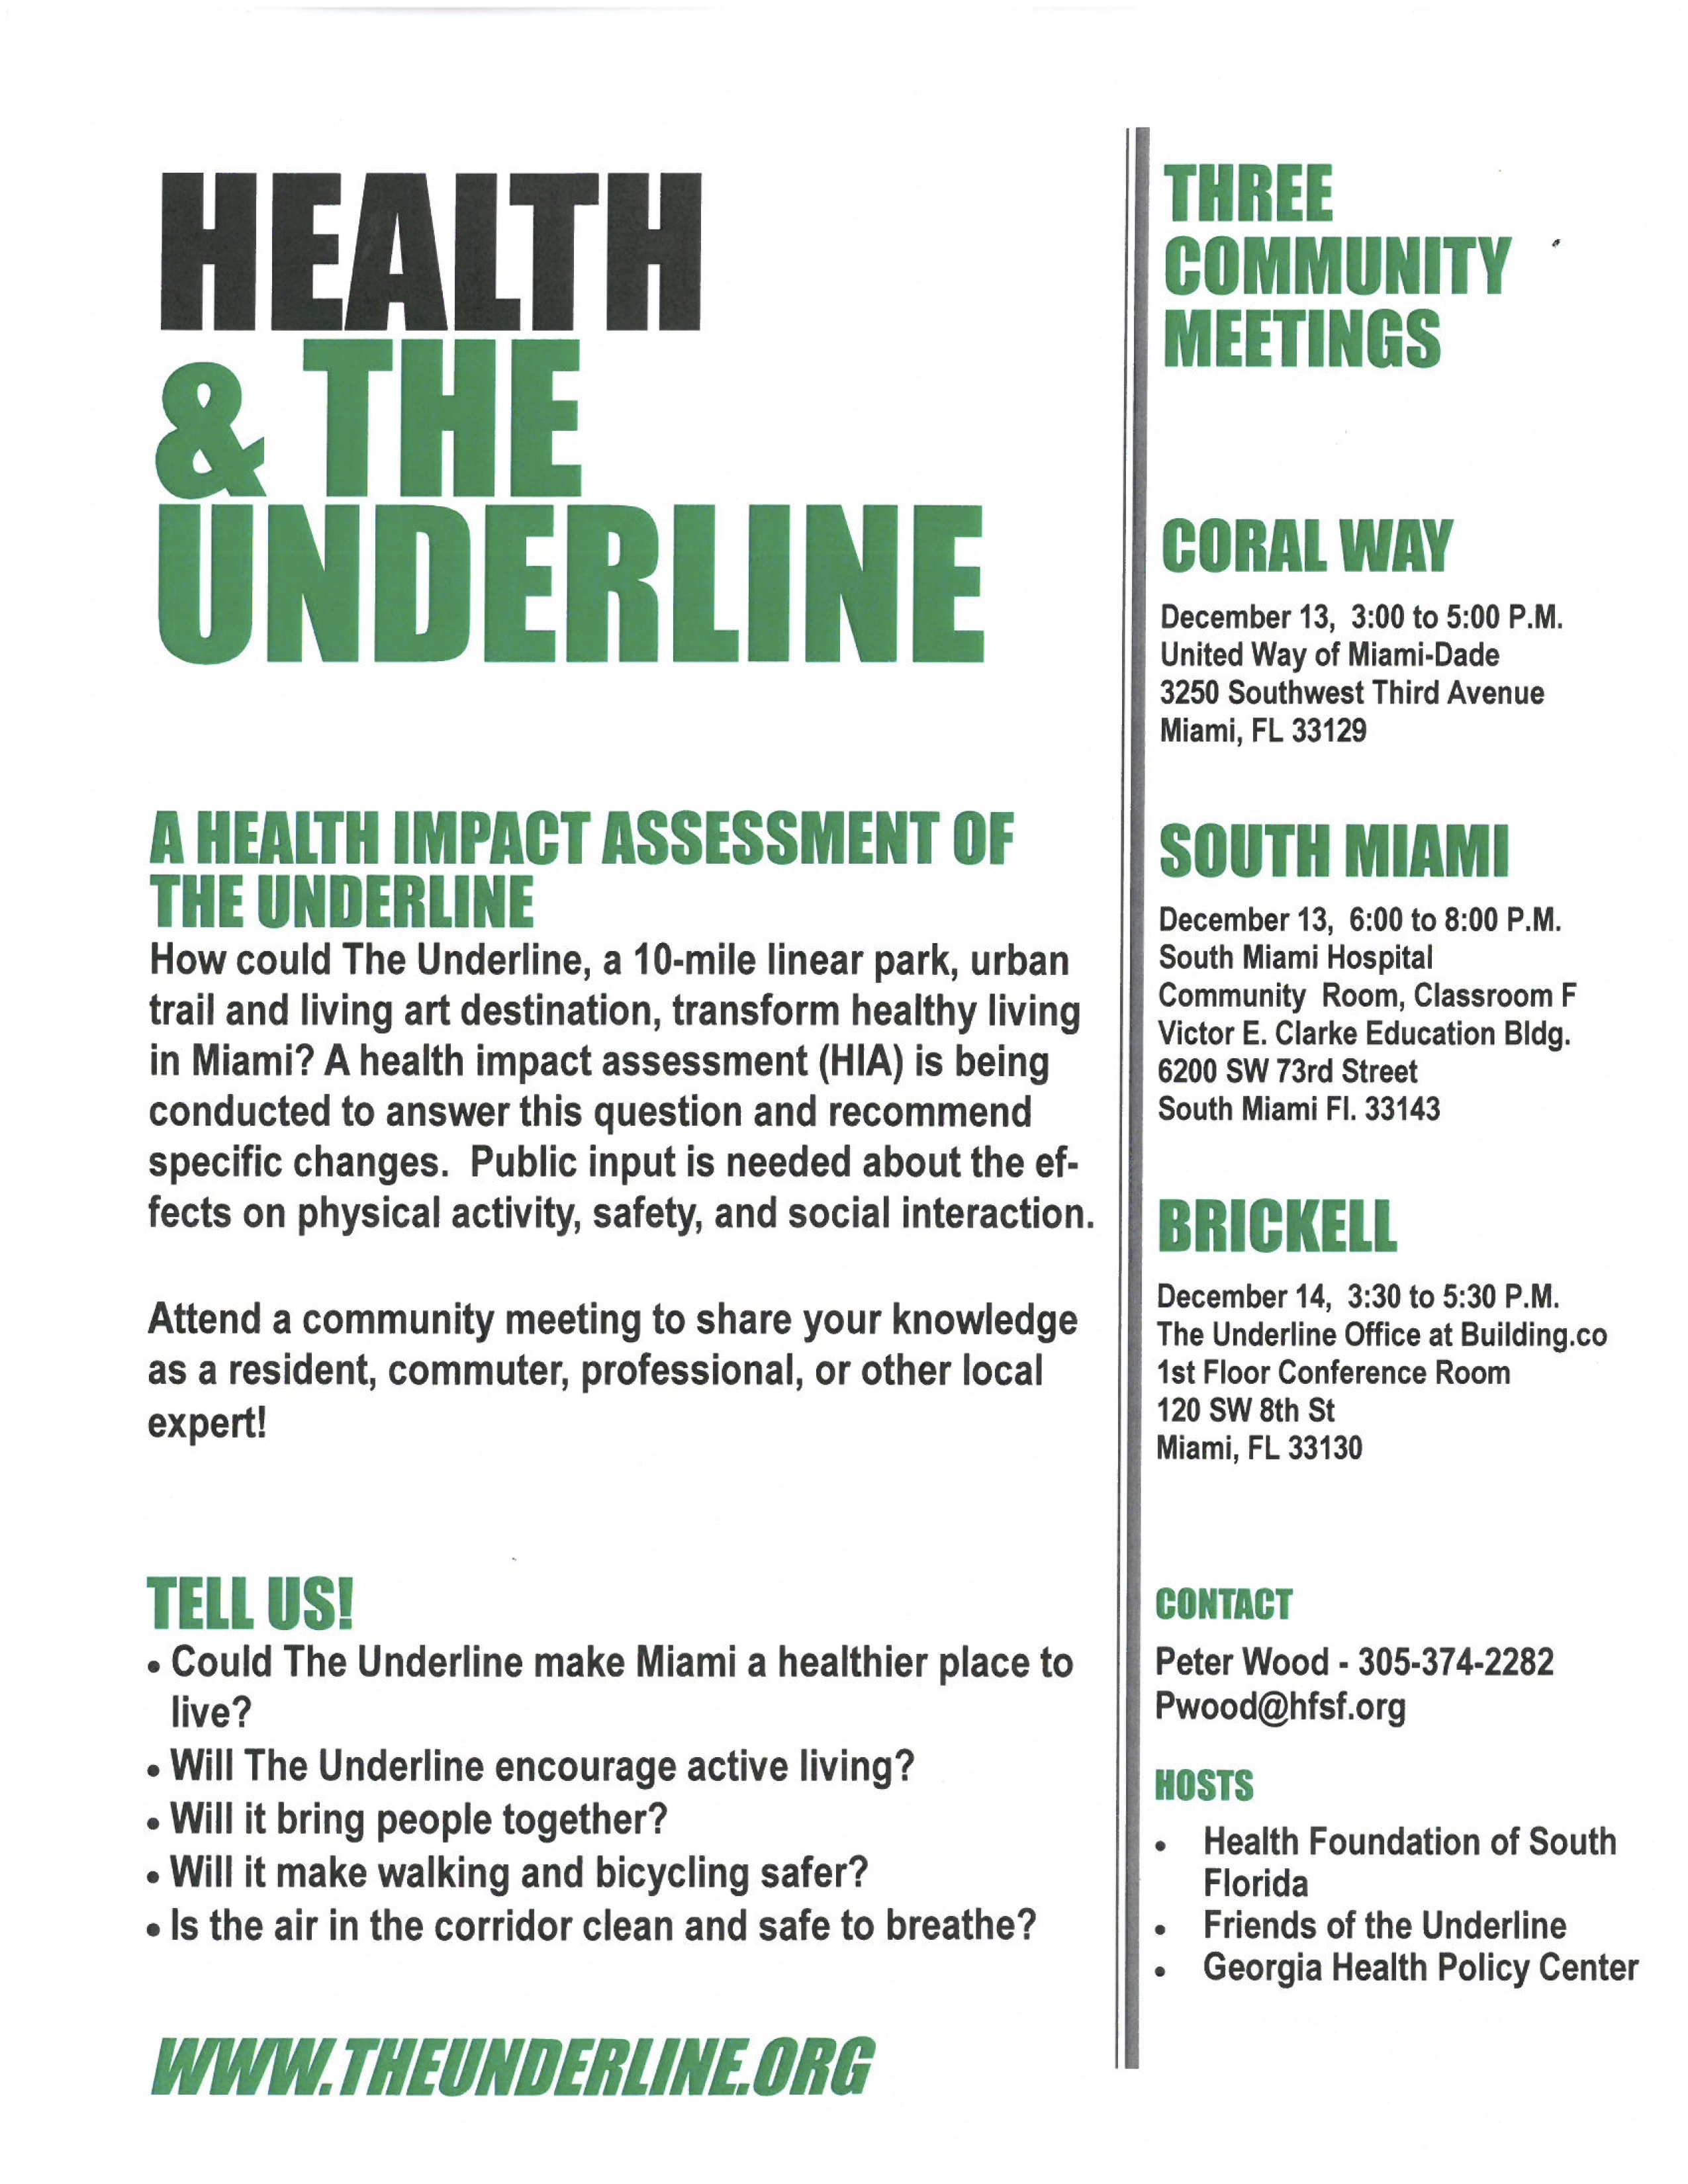 the-underline-community-meetings-flyer